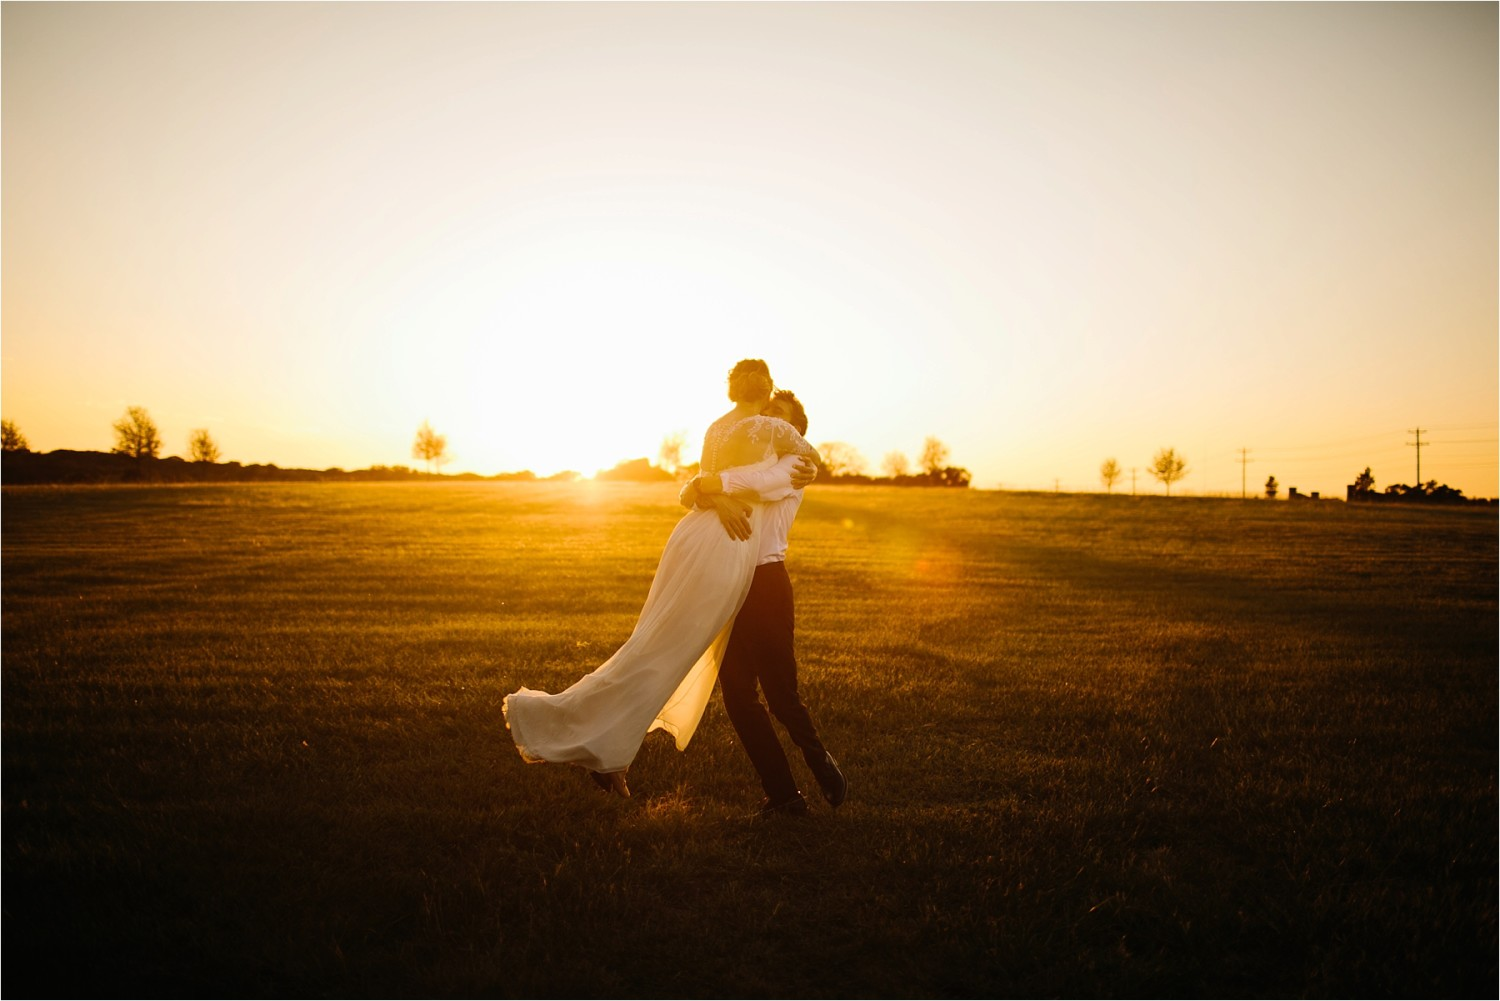 Chandler + Ryan || an emotional, whimsical wedding at the Milestone Barn in Aubrey, TX